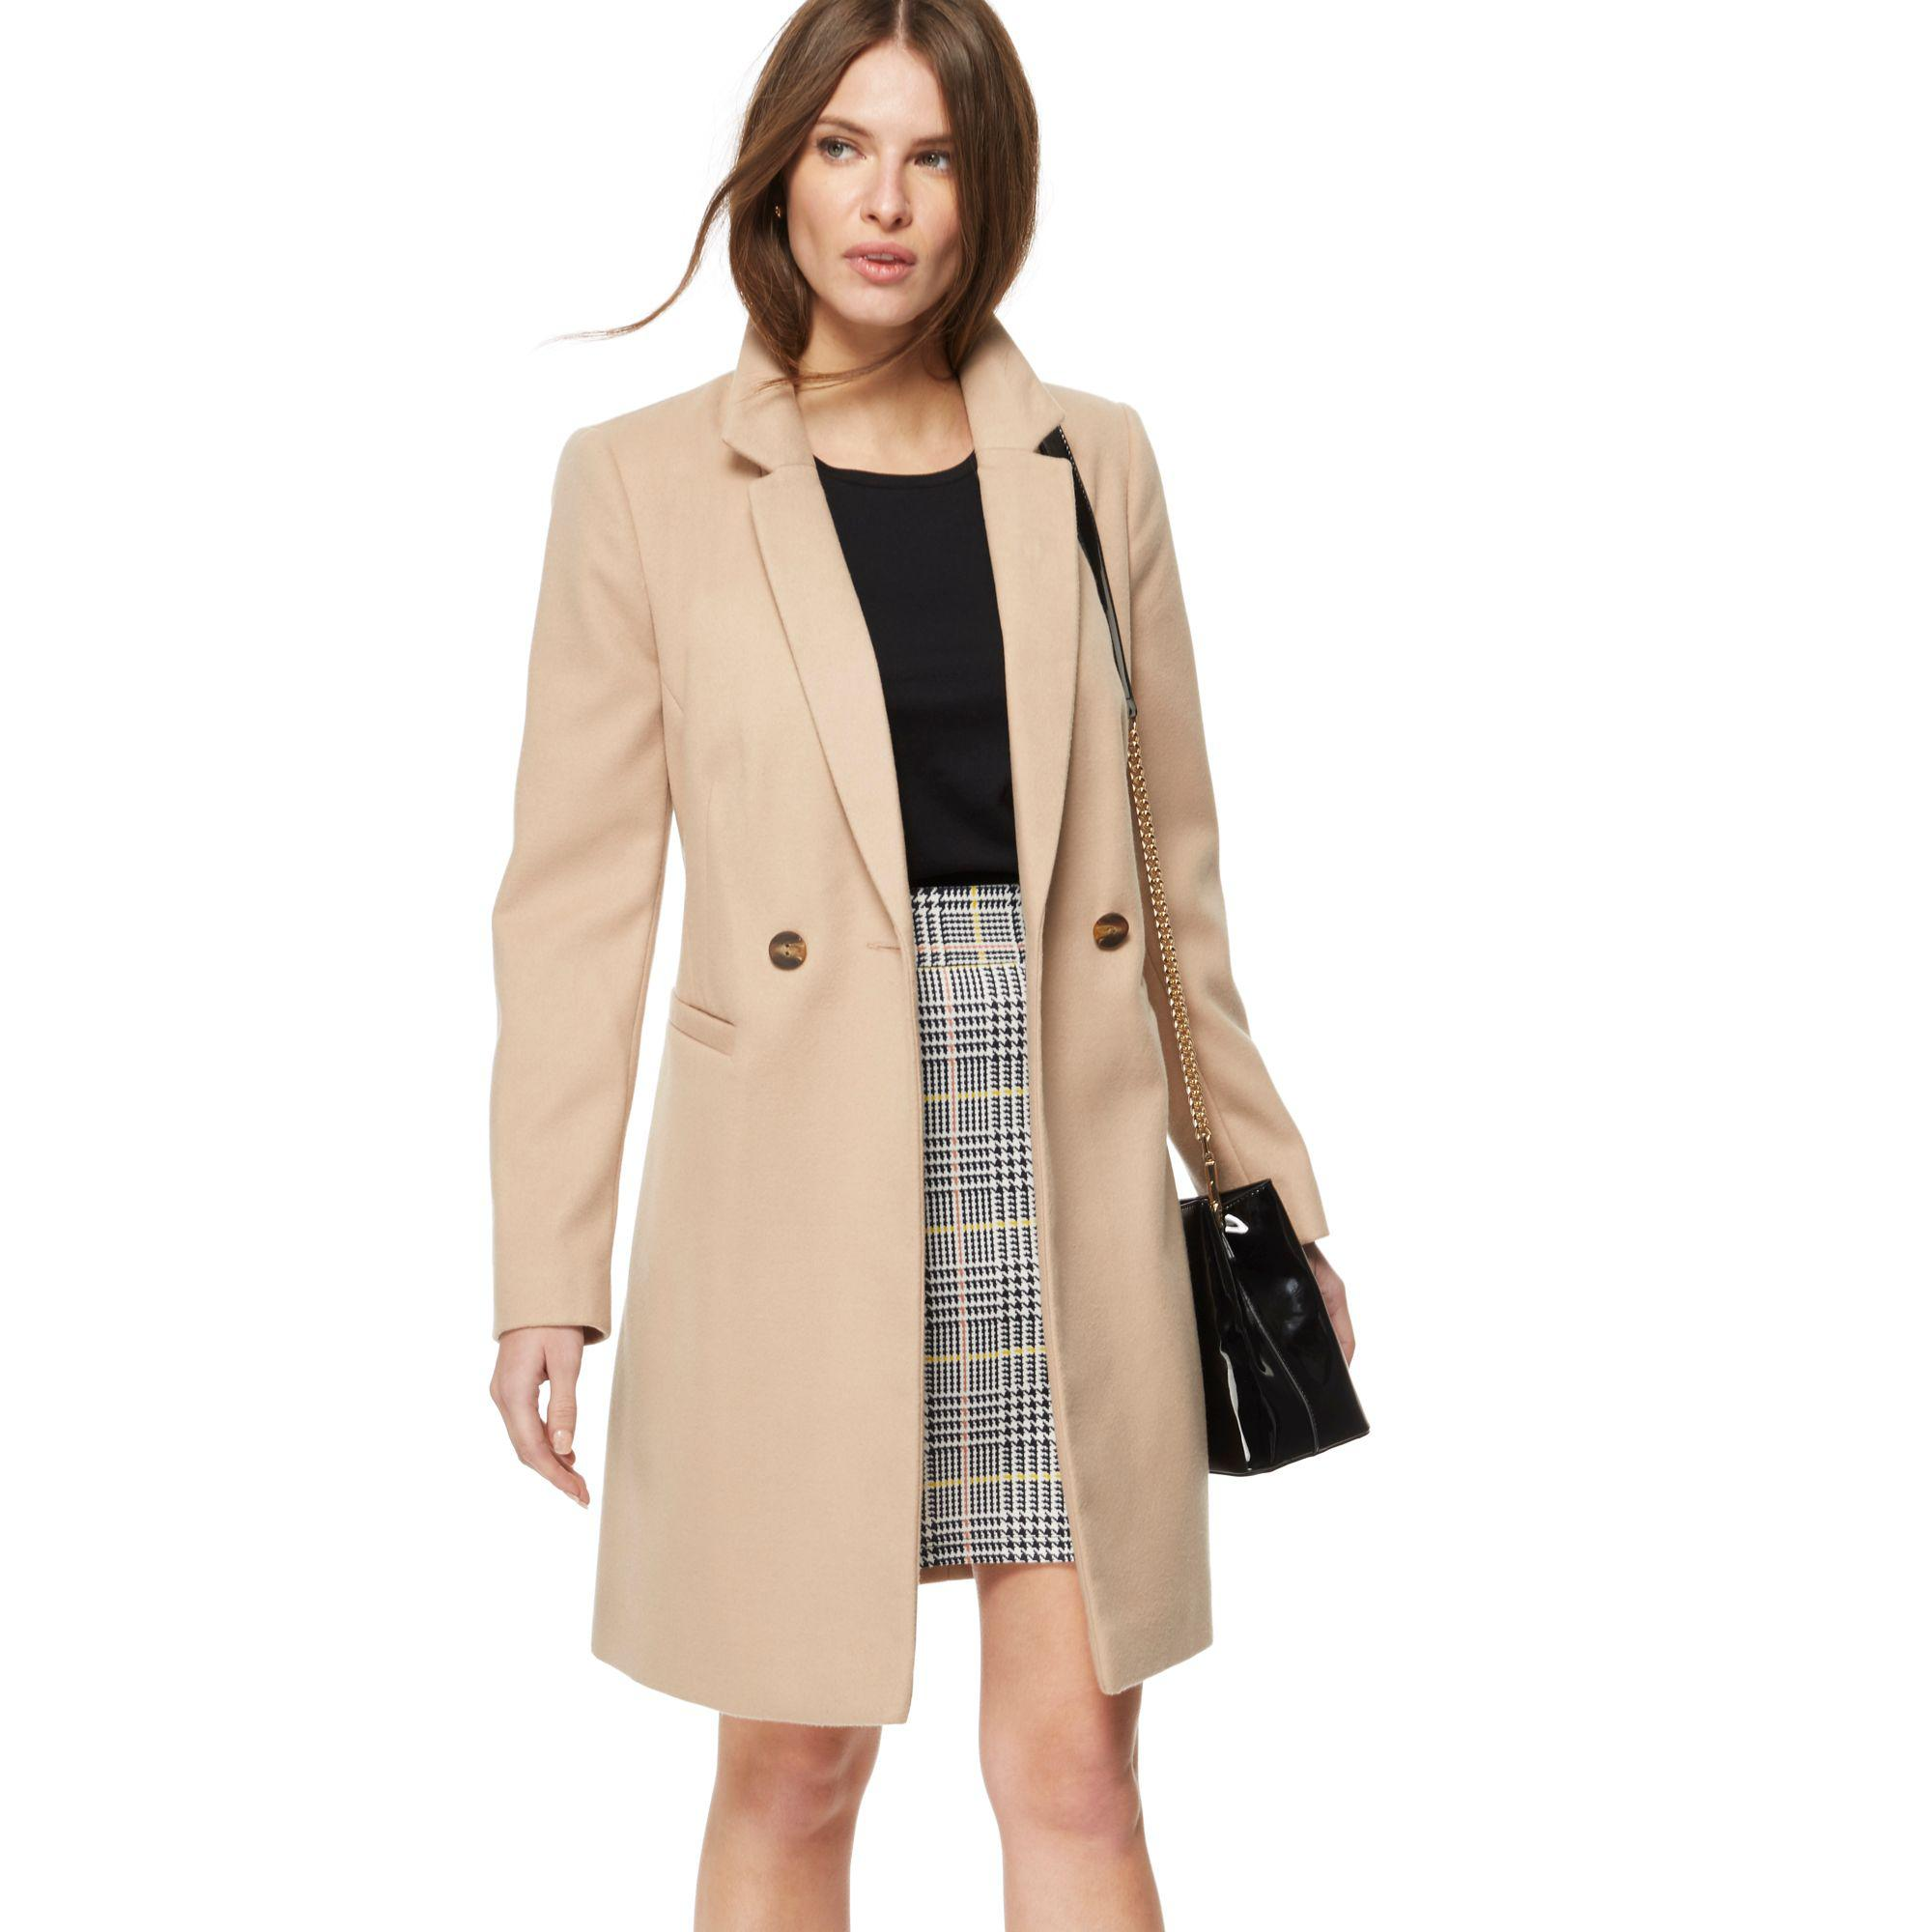 574748871145 Red Herring Camel City Coat in Natural - Lyst